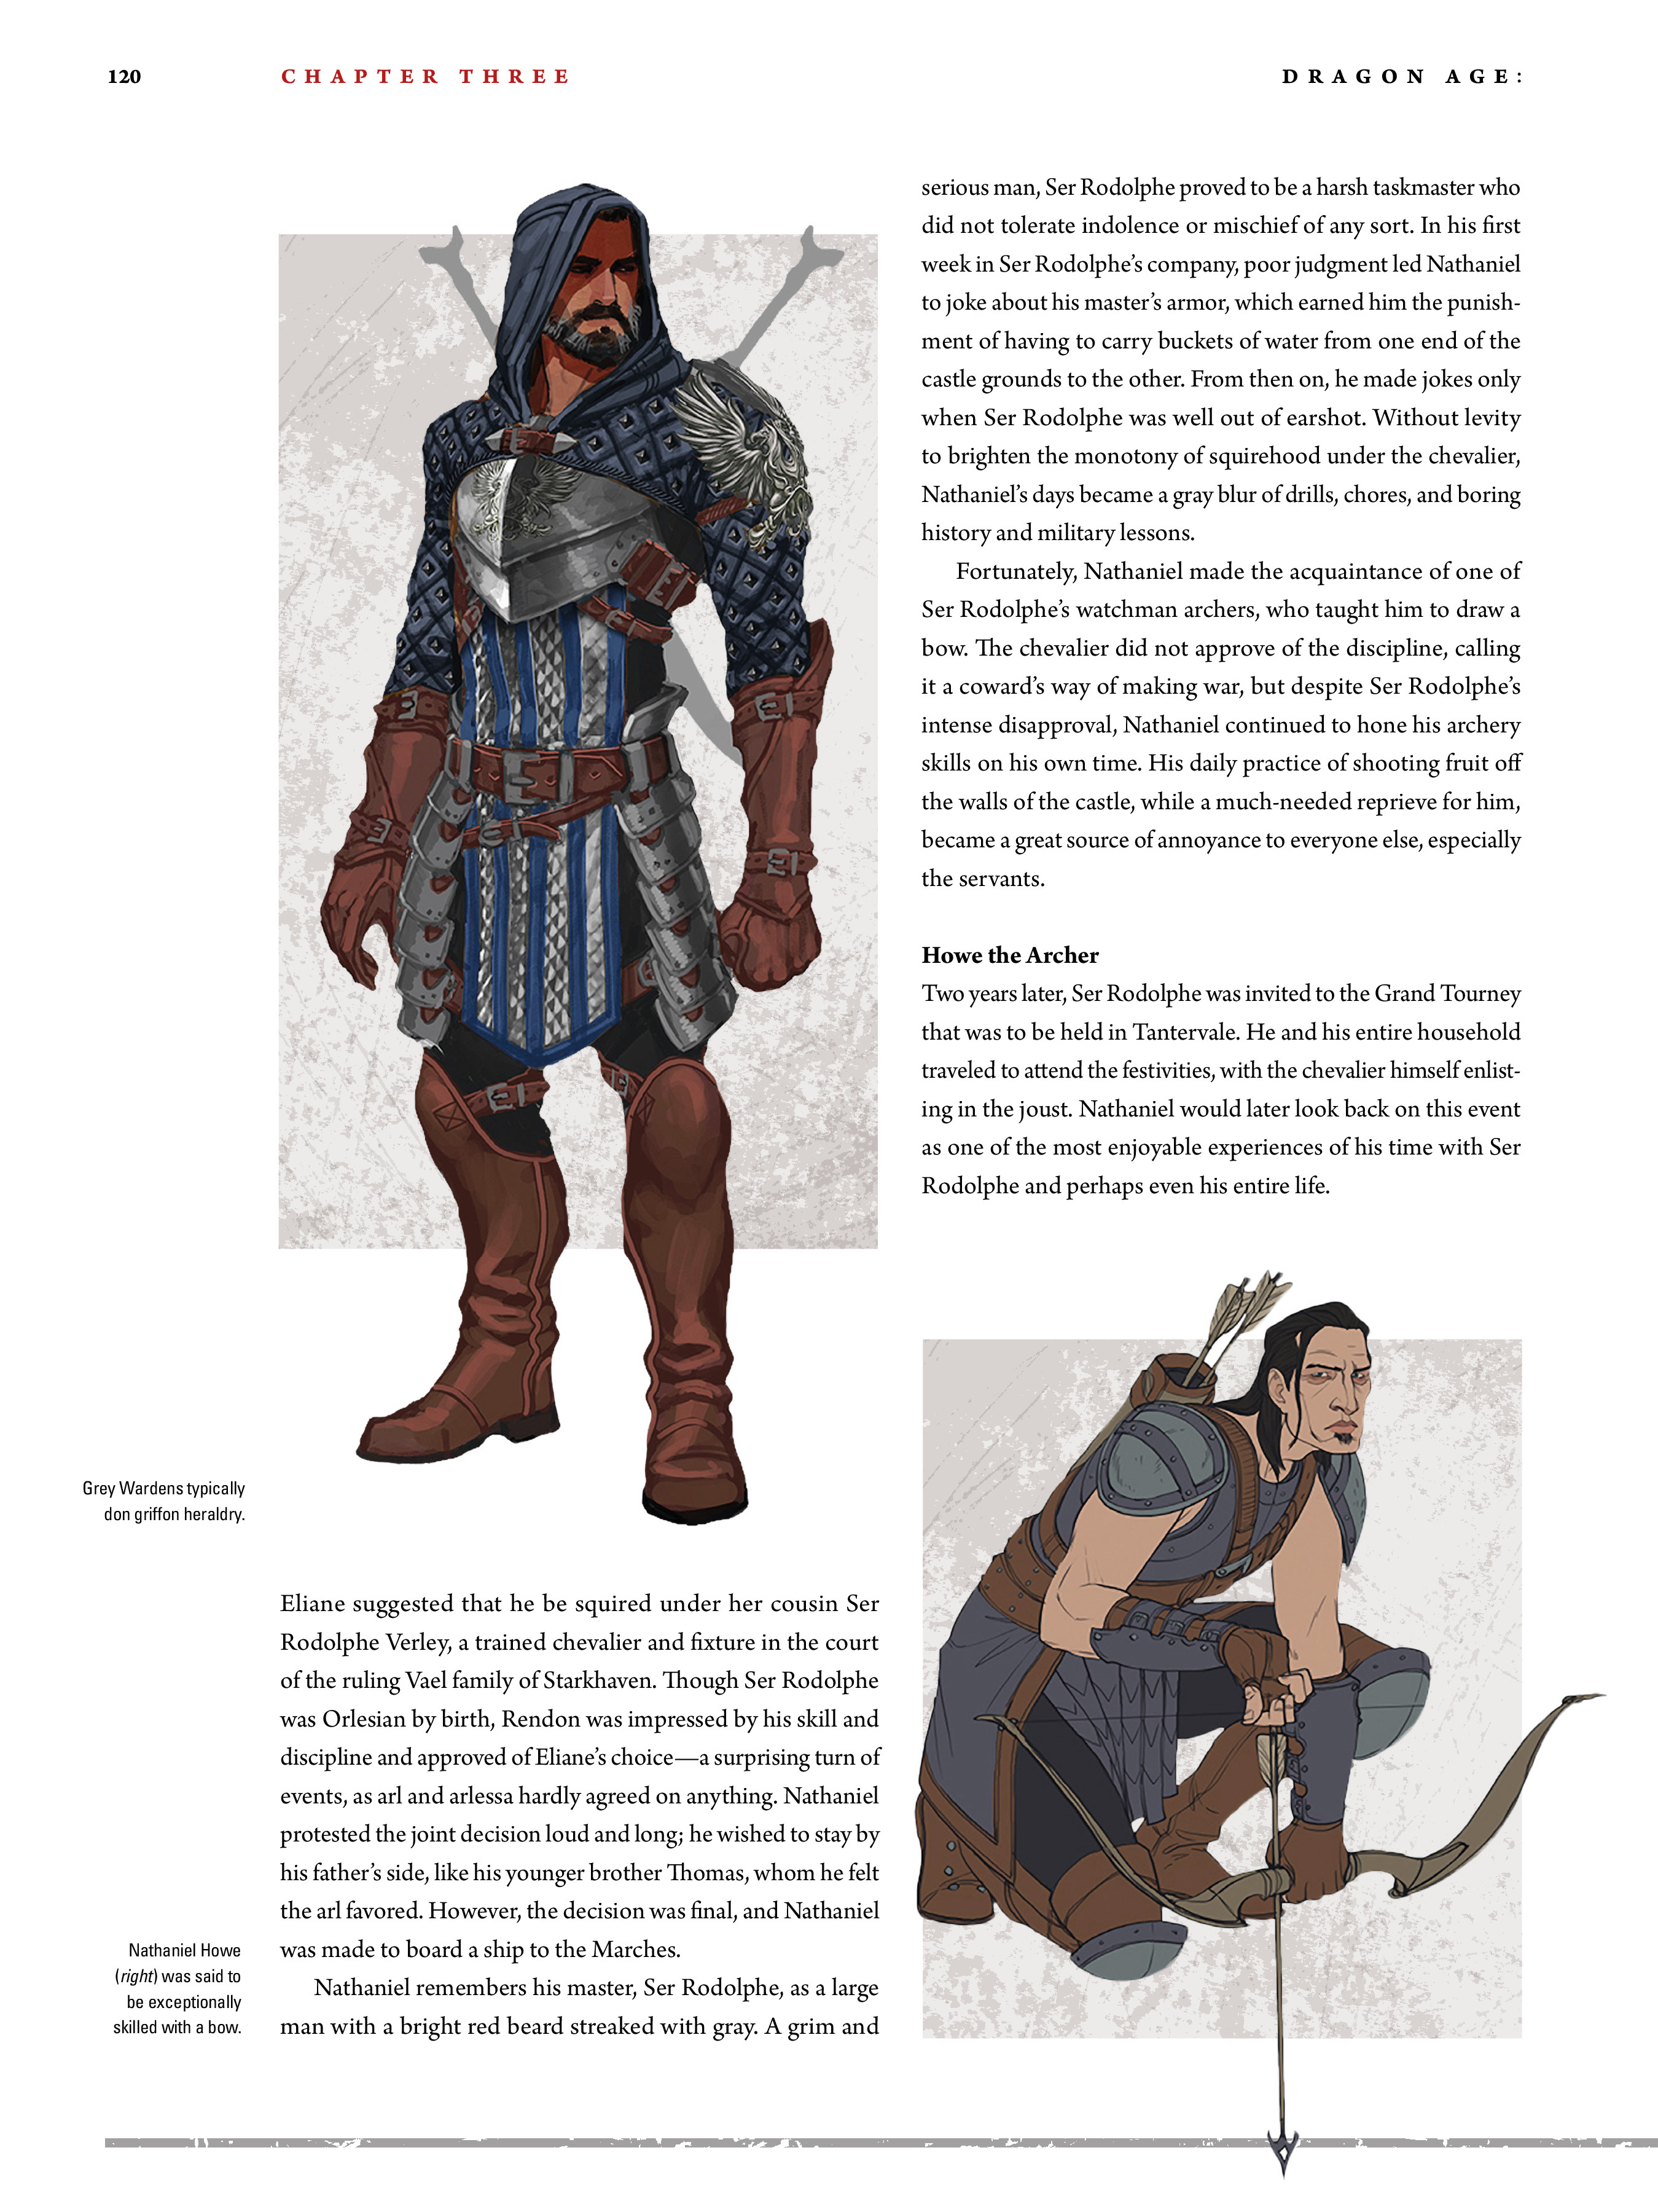 Read online Dragon Age: The World of Thedas comic -  Issue # TPB 2 - 116